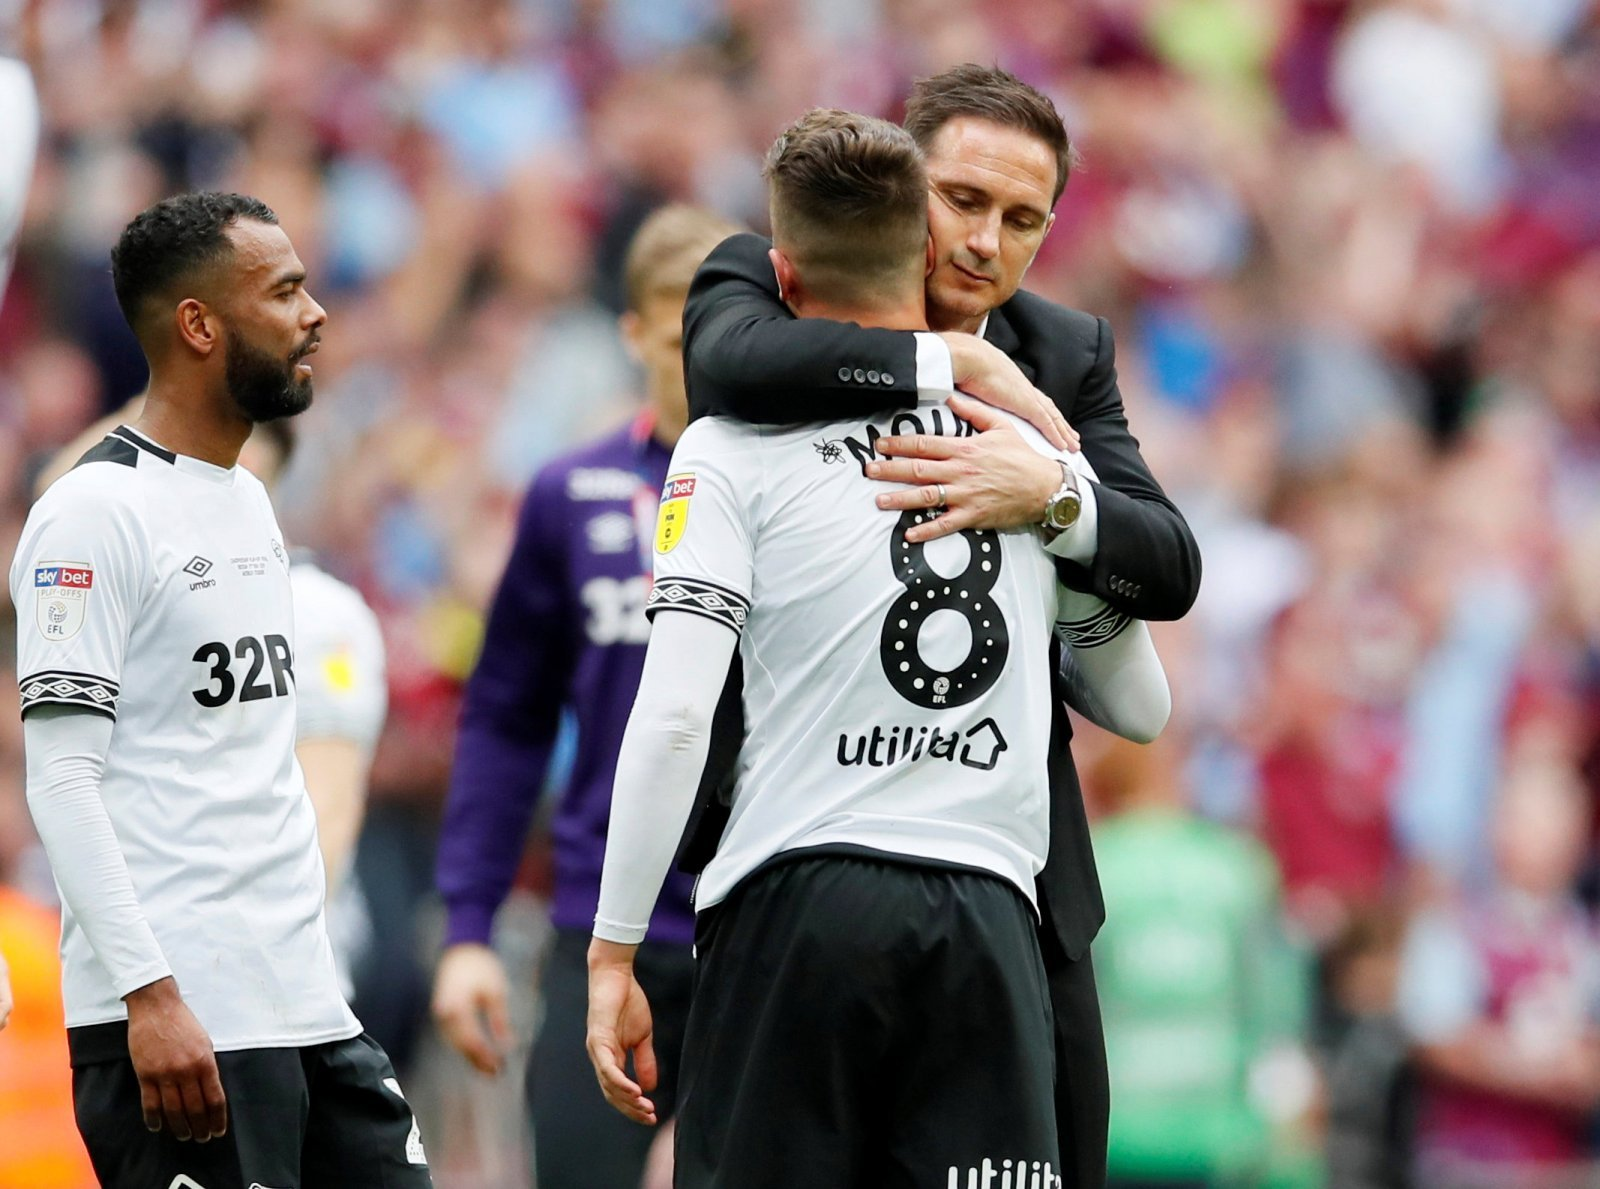 Chelsea: Lampard fires warning to young stars despite handing Old Trafford starts